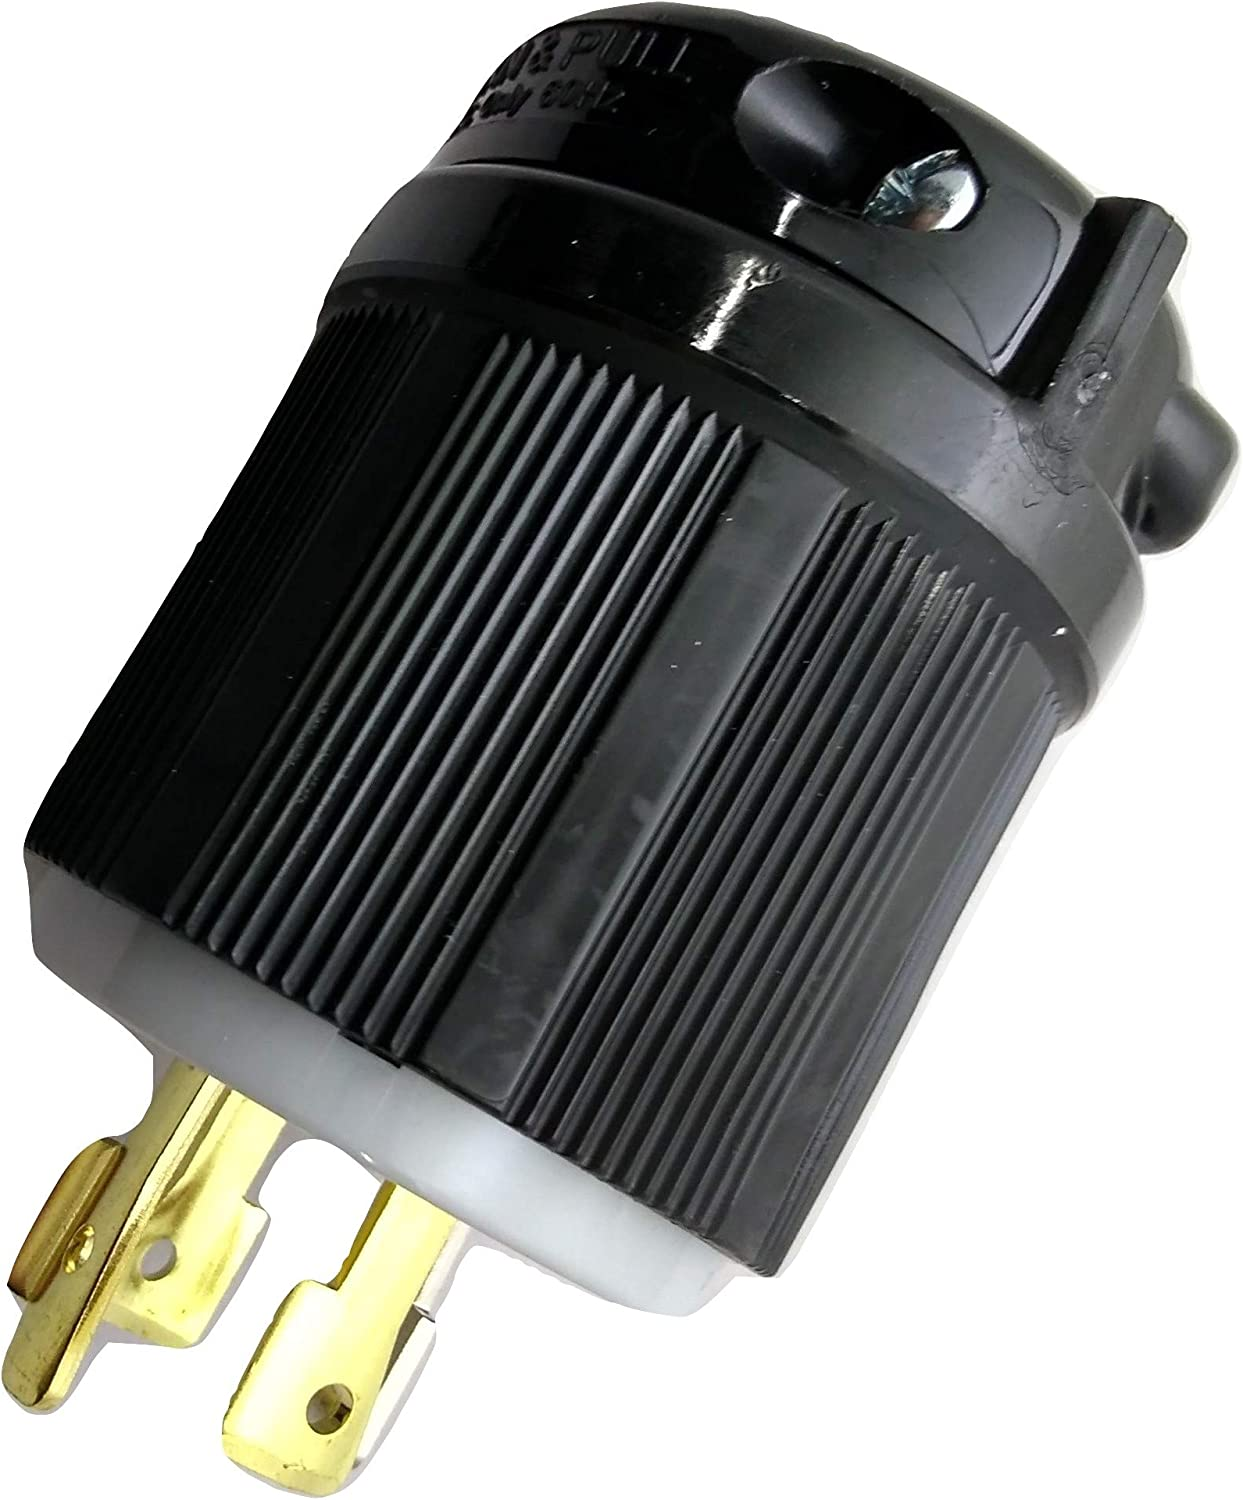 [SCHEMATICS_43NM]  Amazon.com: NEMA L14-20 Plug. 20A 125/250VOLT. 3-Pole. 4-Wire. Locking.  Grounding Plug: Home Audio & Theater | L14 20 Plug Wiring Diagram 240v |  | Amazon.com